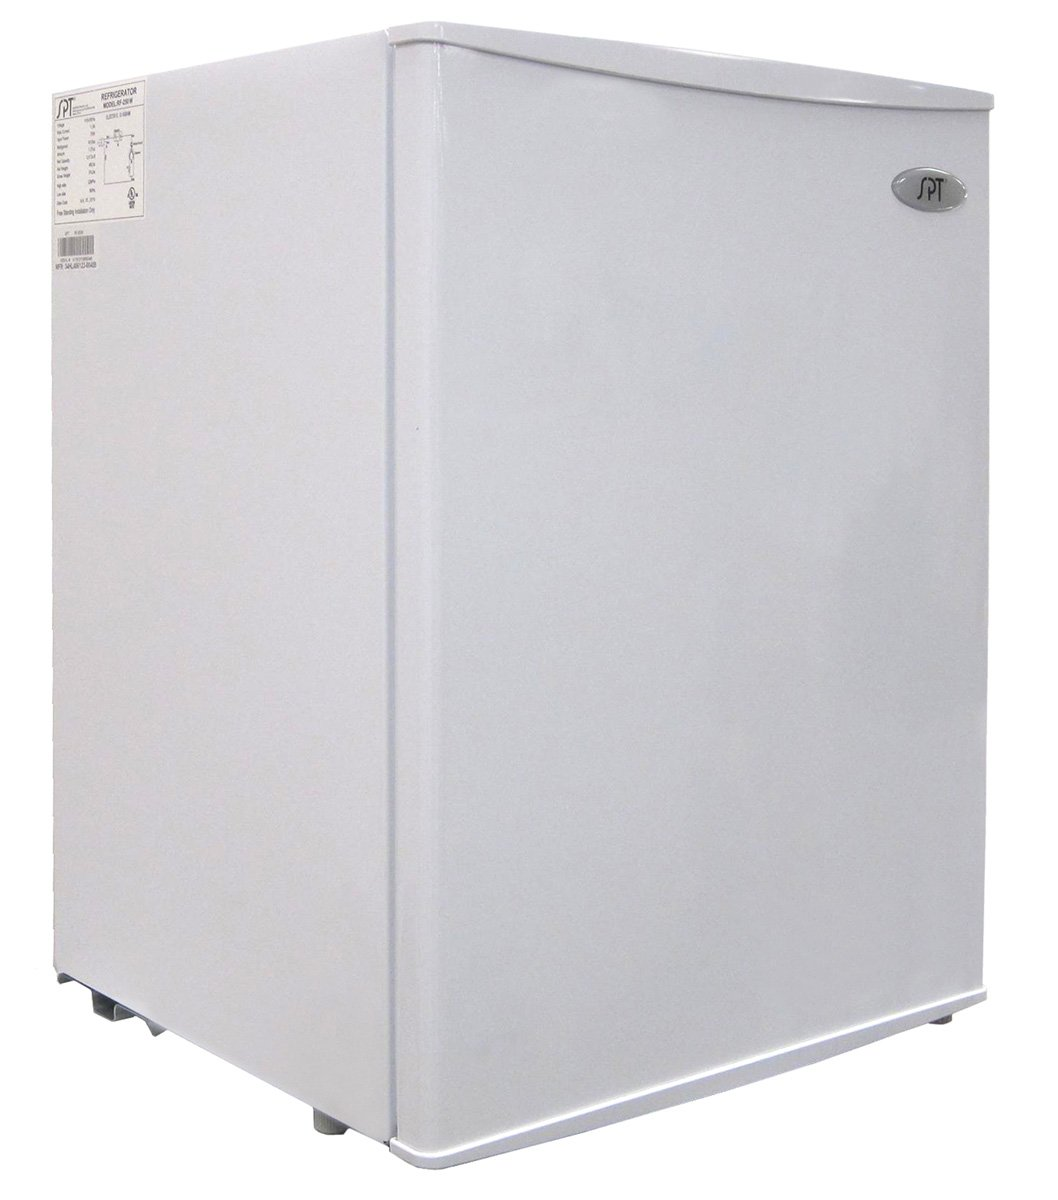 SPT 2 1/2 Cubic Foot Compact Energy Star Refrigerator Review